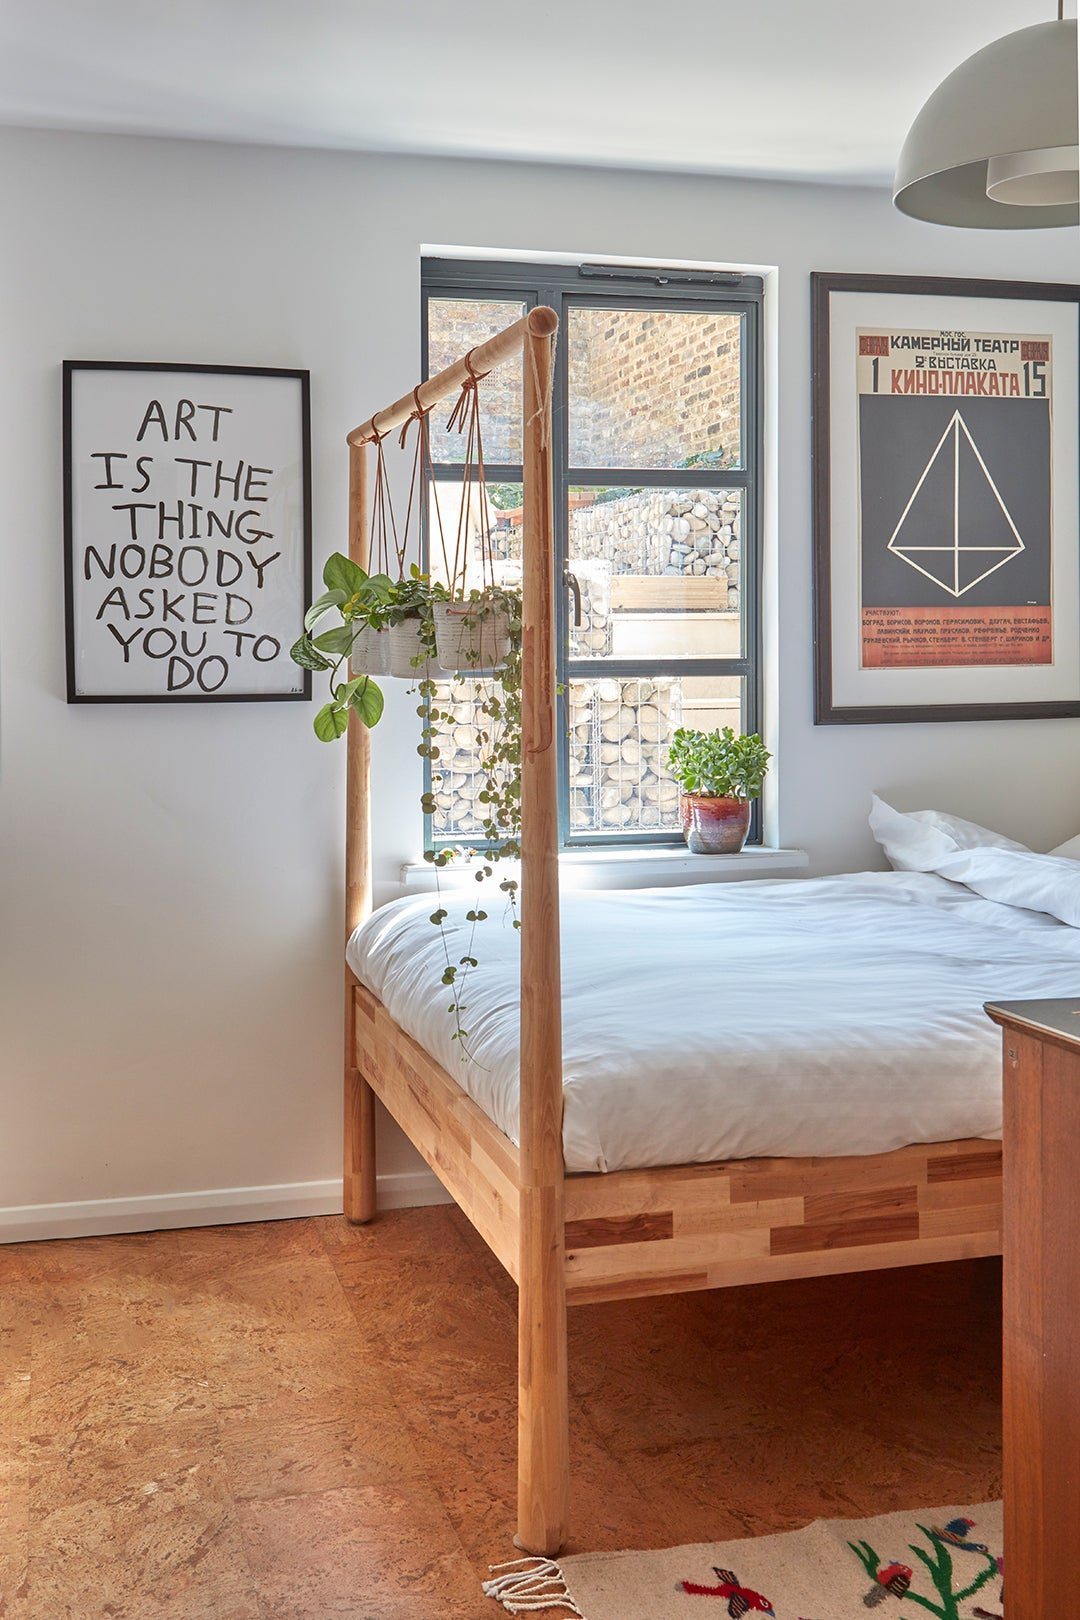 four poster bed with plants hanging from it